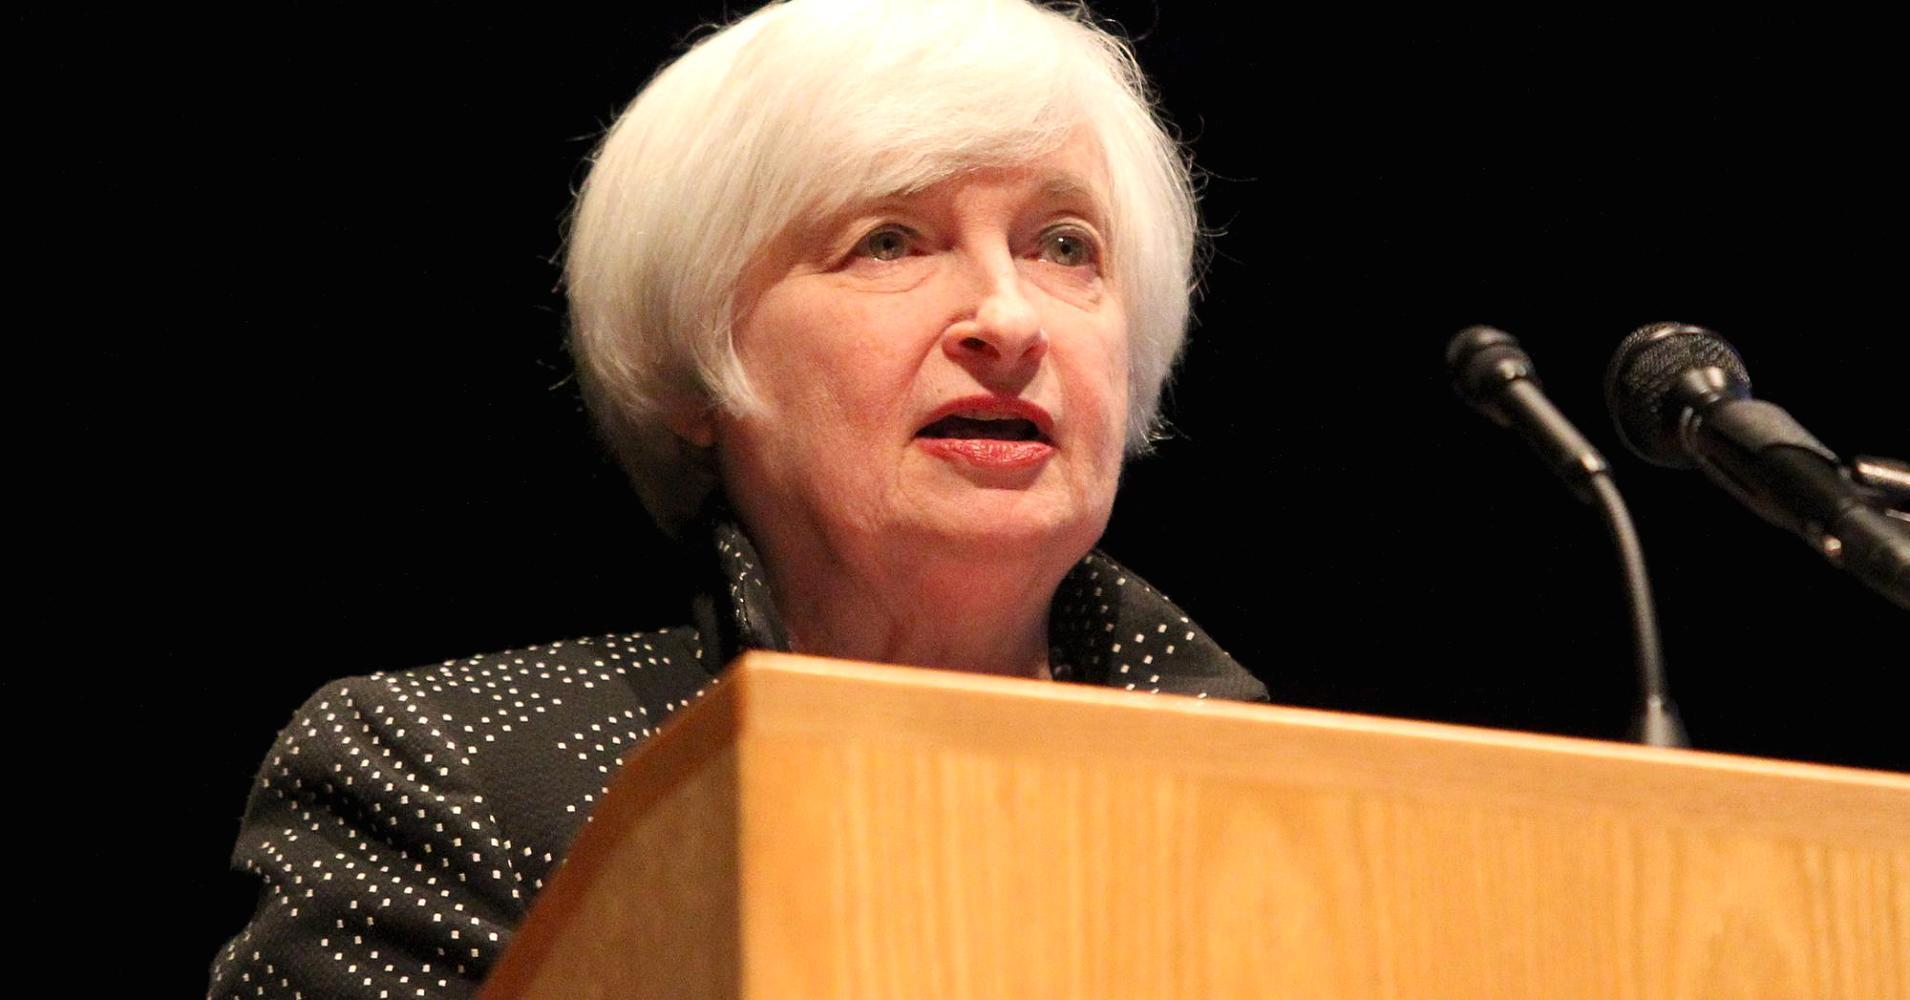 Has the Fed lost markets' confidence?